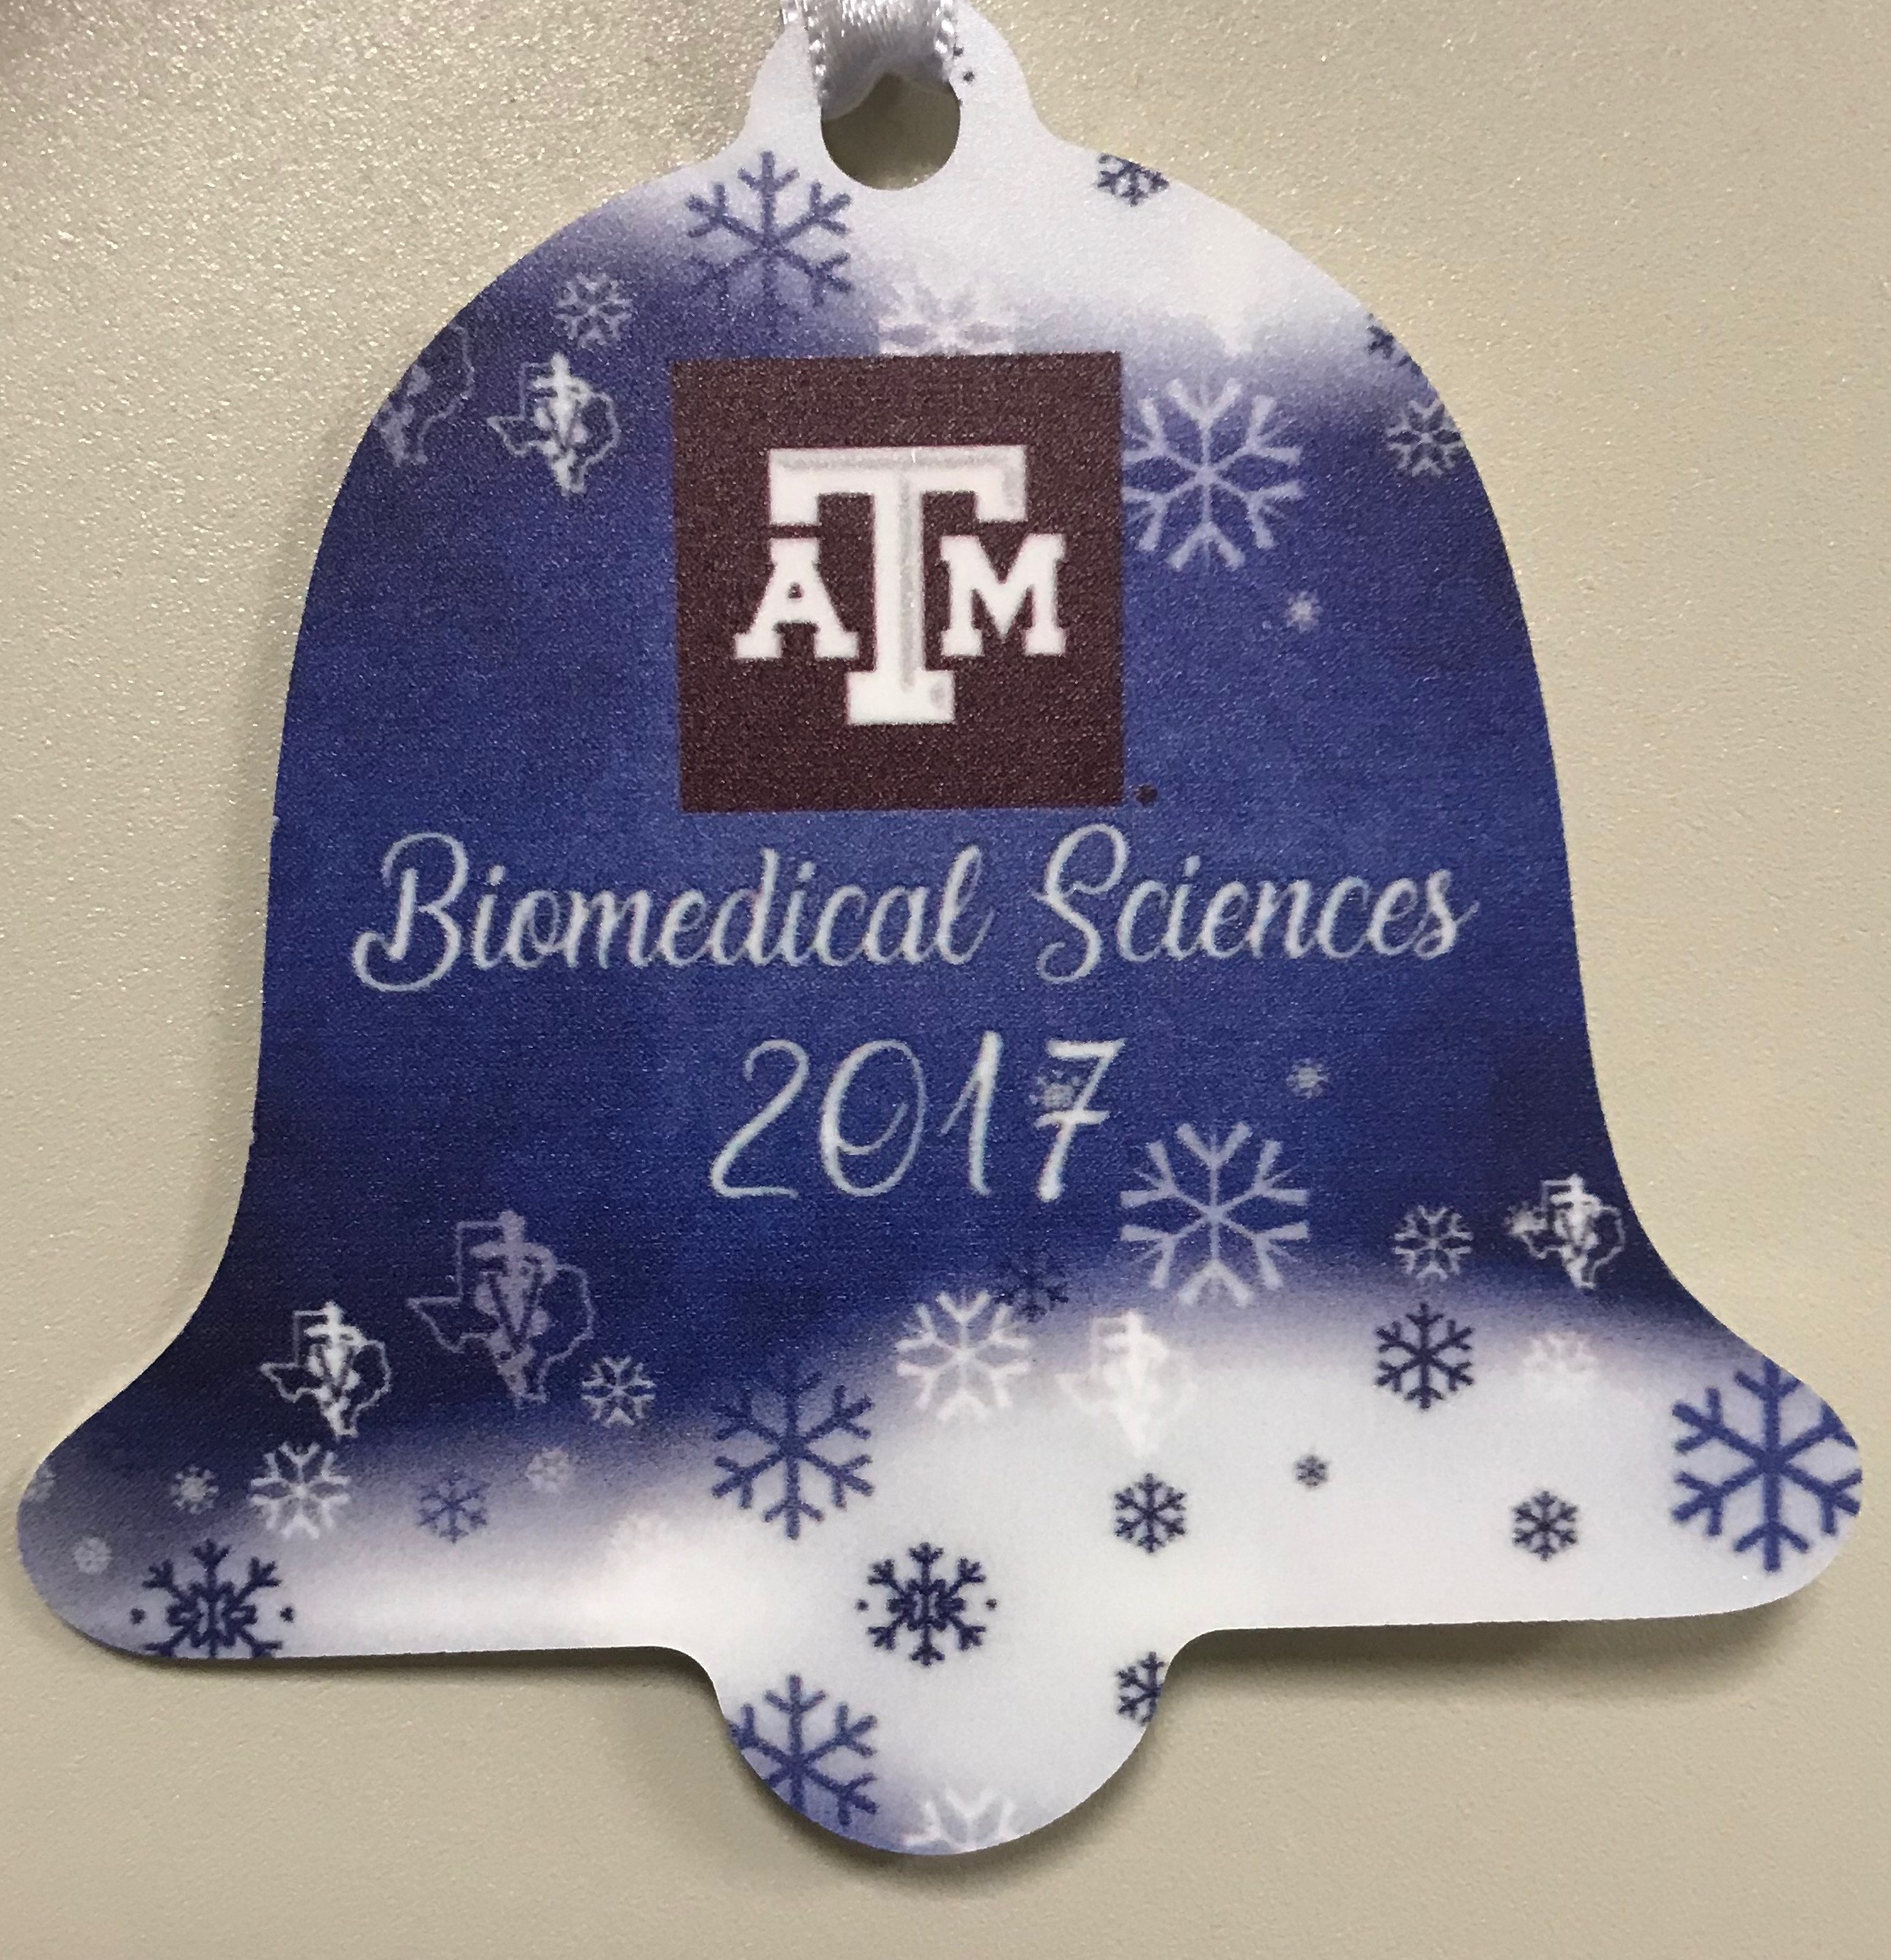 2017 Biomedical Sciences Christmas Ornament